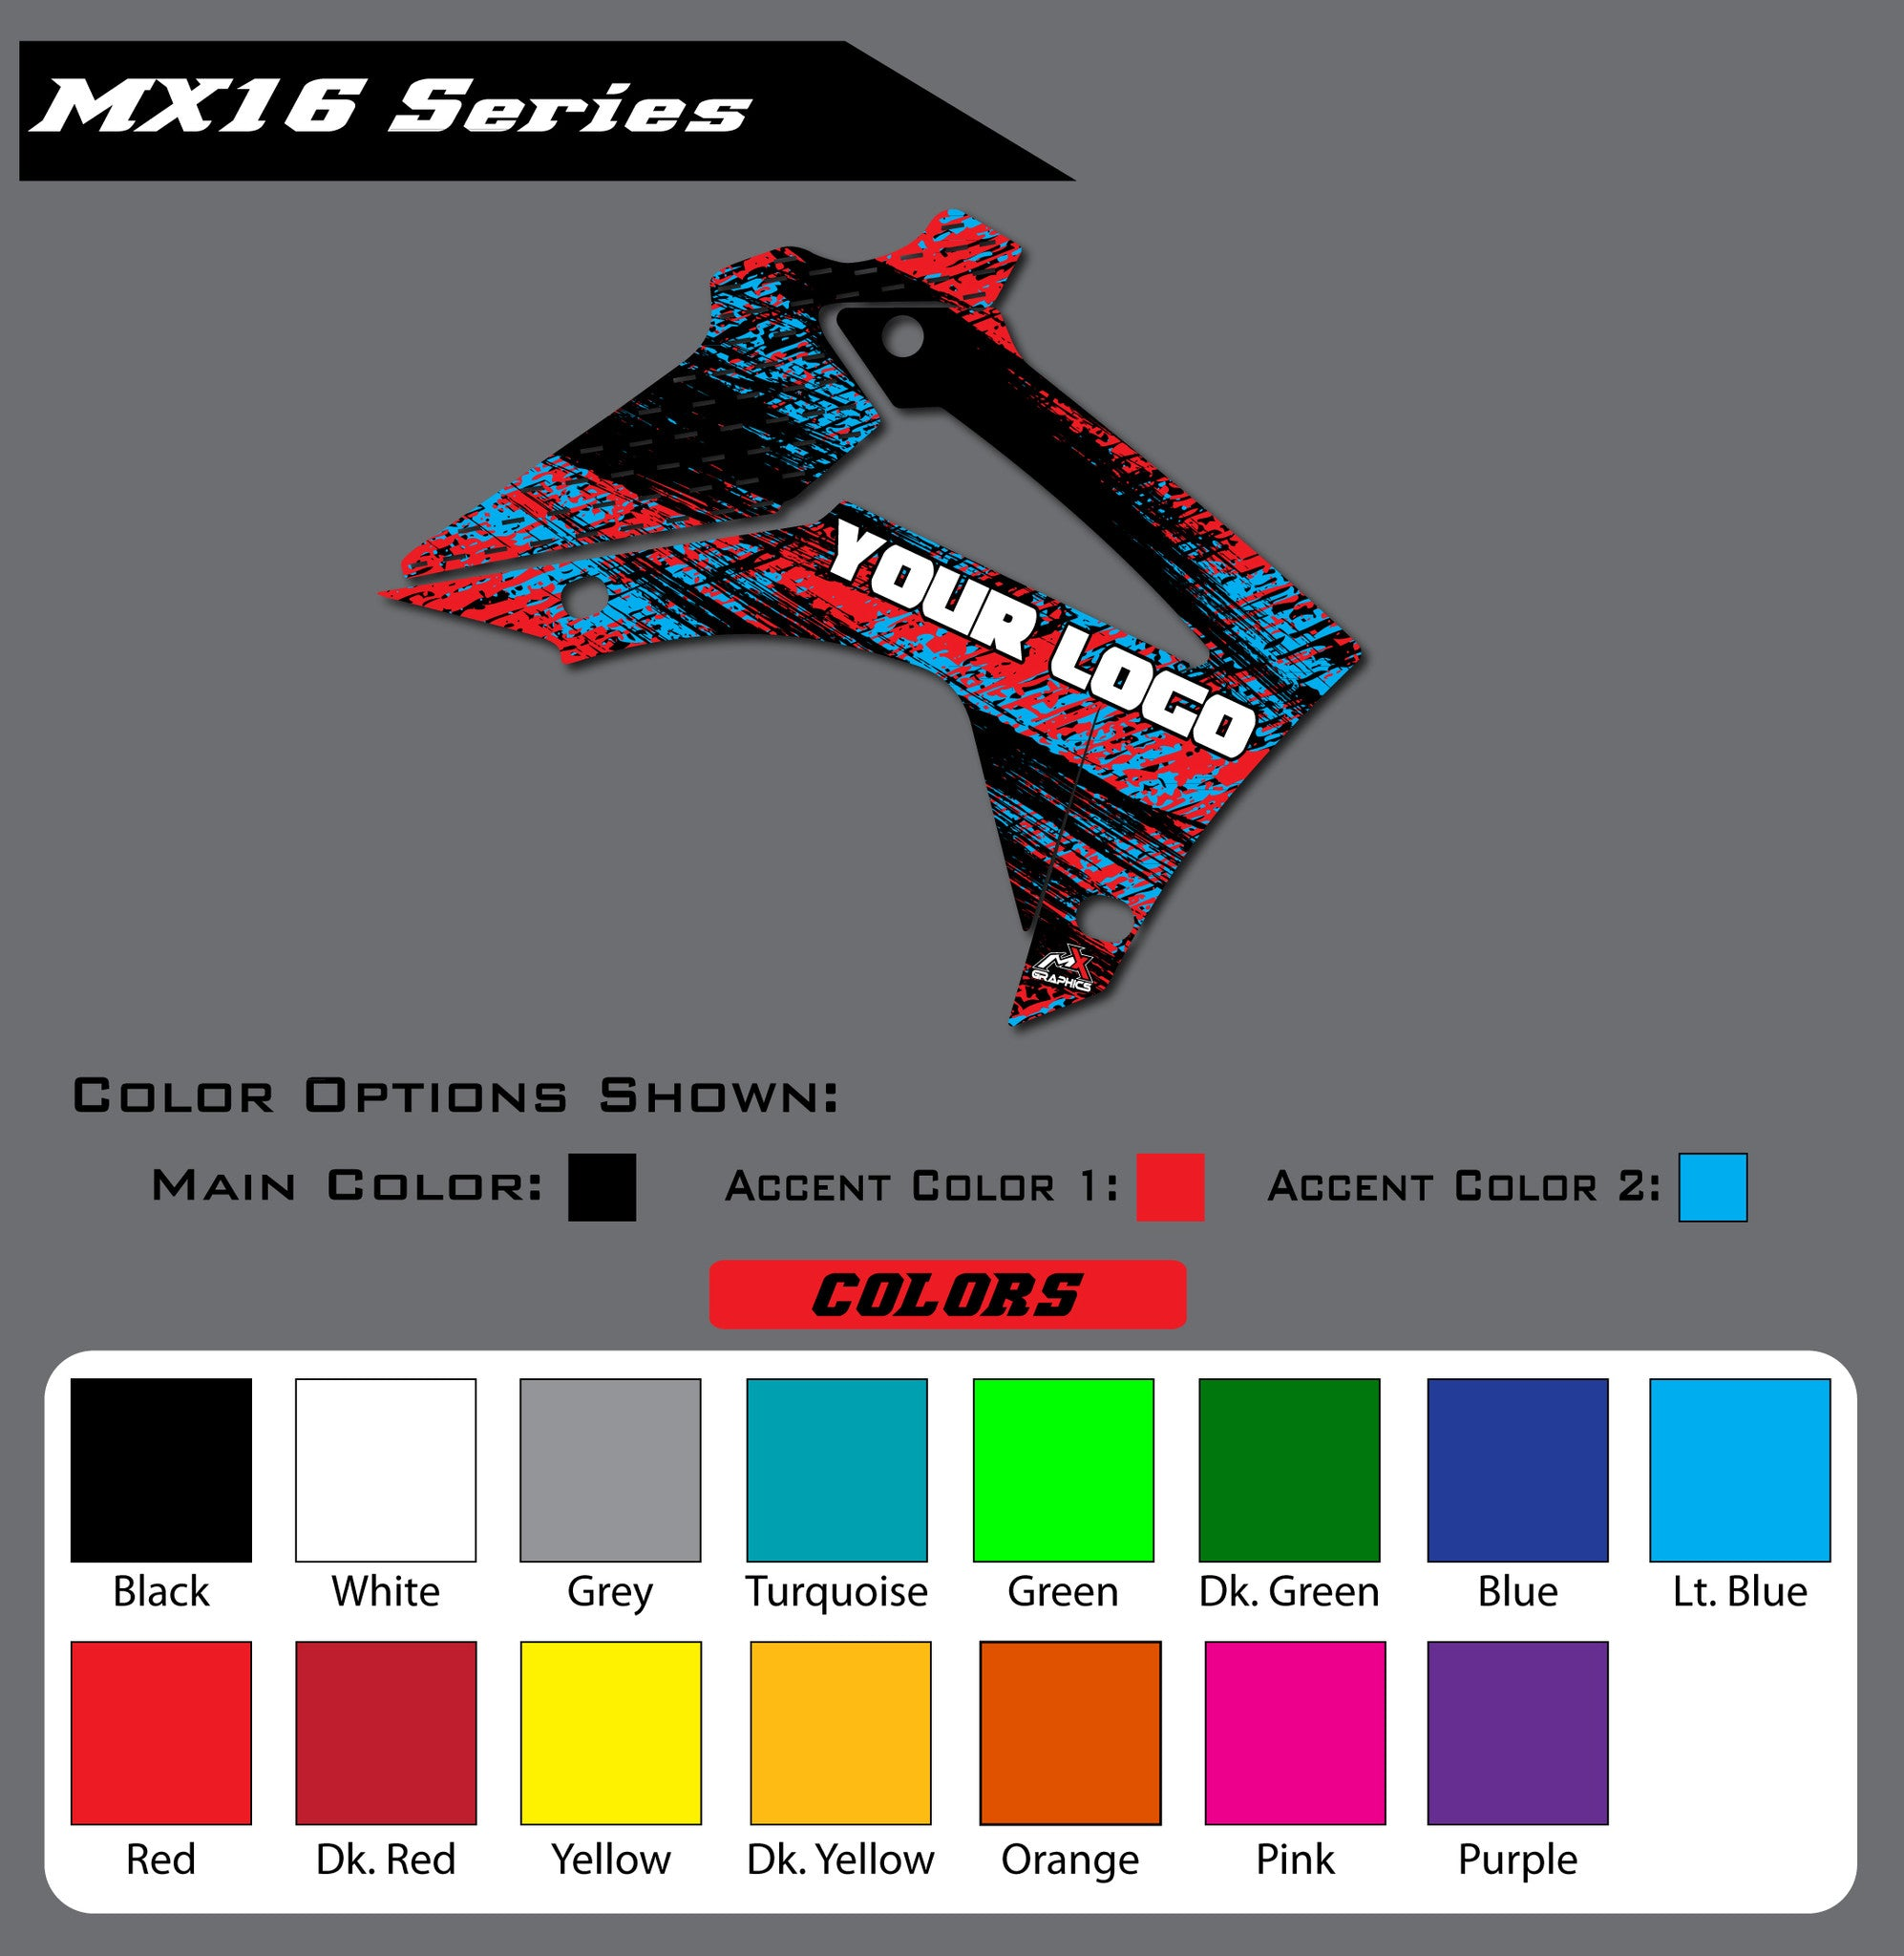 Honda MX16 Shroud Graphics